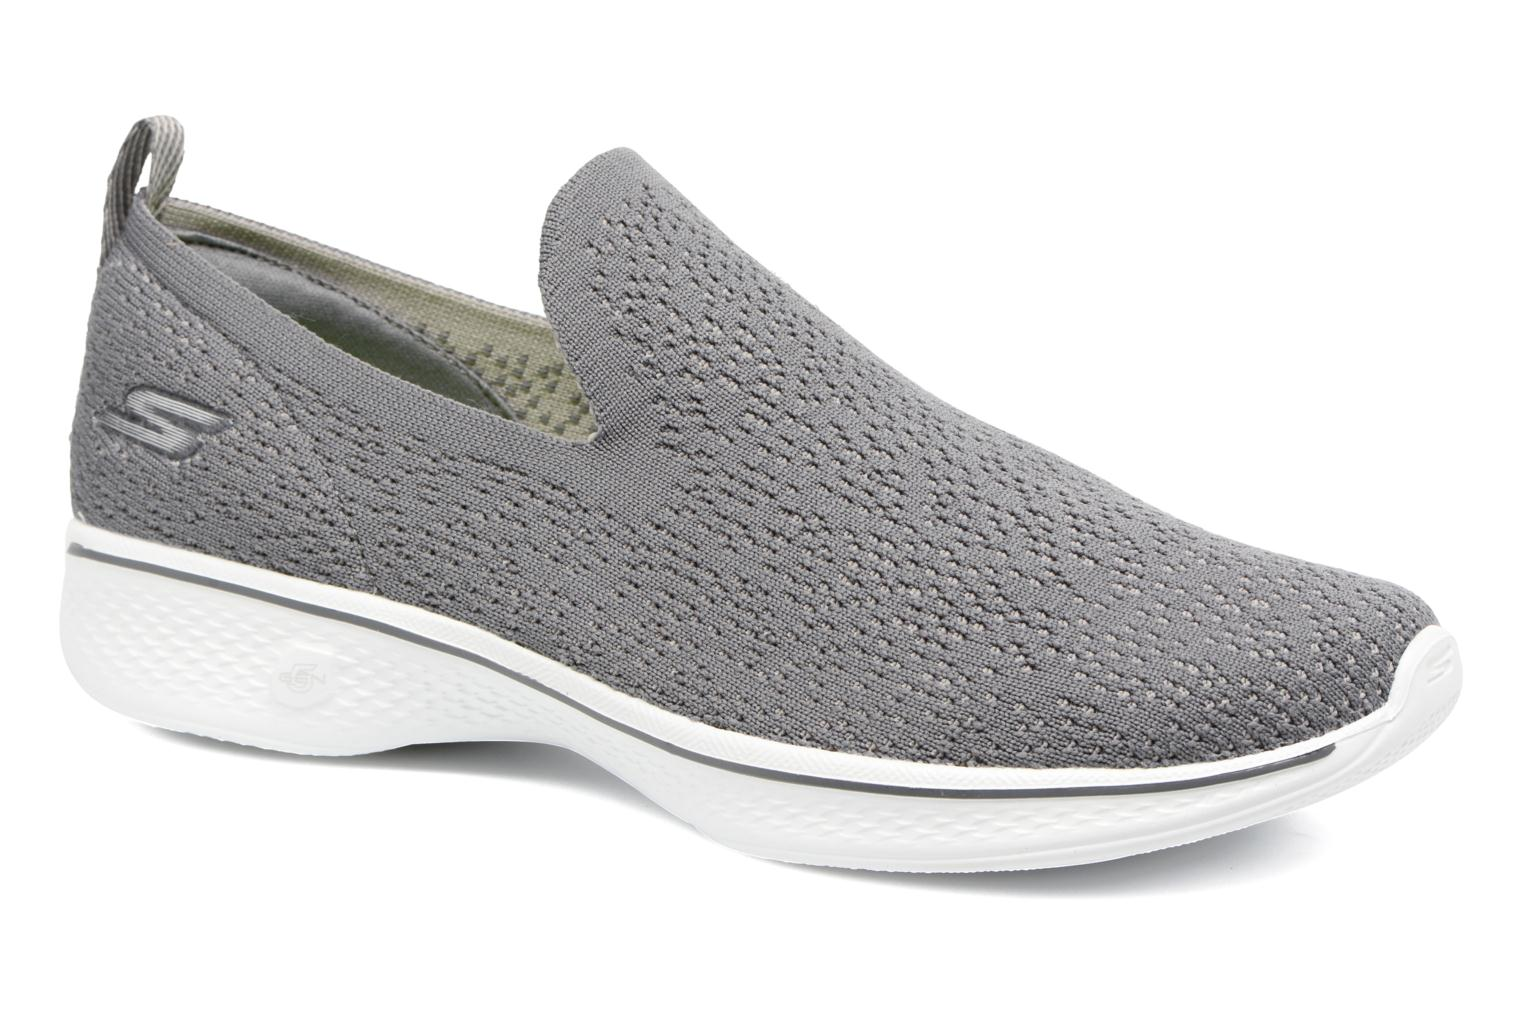 Marques Chaussure femme Skechers femme Go walk 4 gifted NYGY